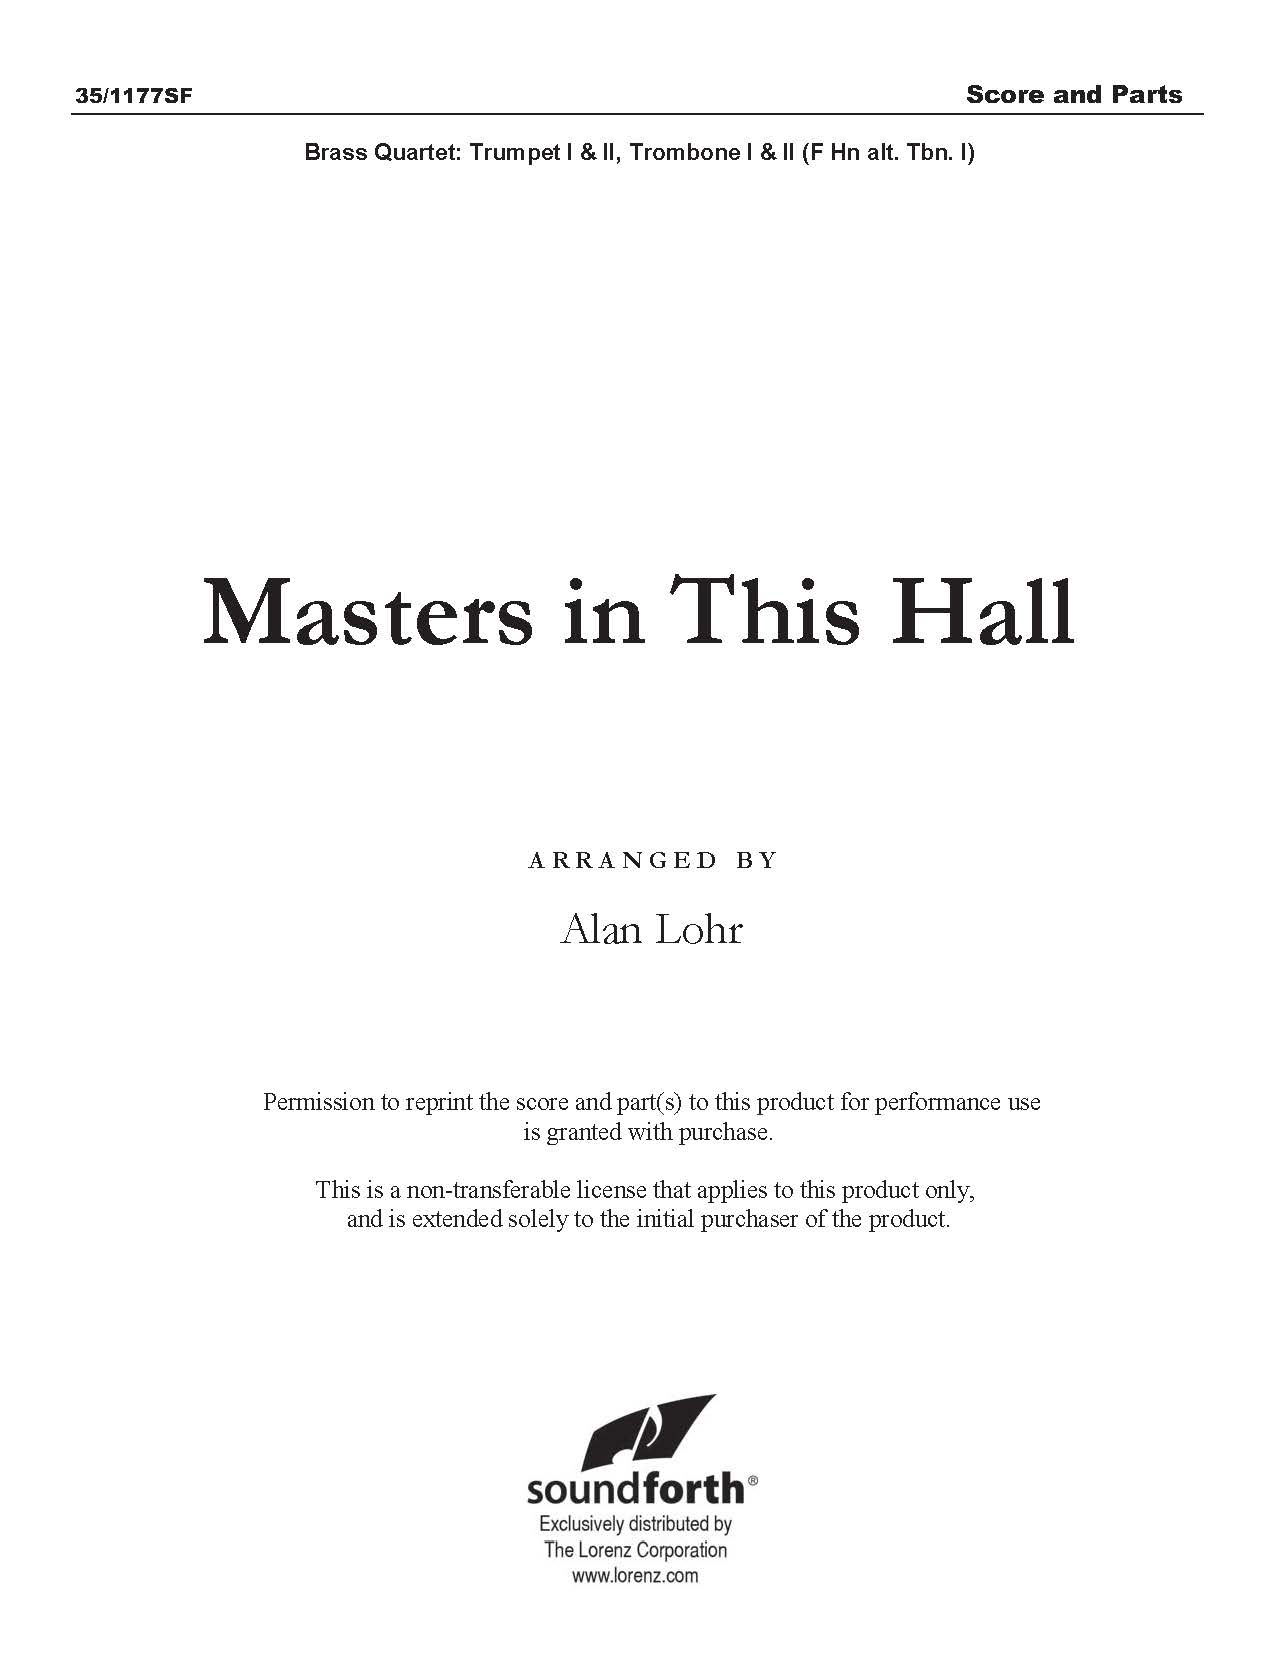 Masters in This Hall - Digital Delivery